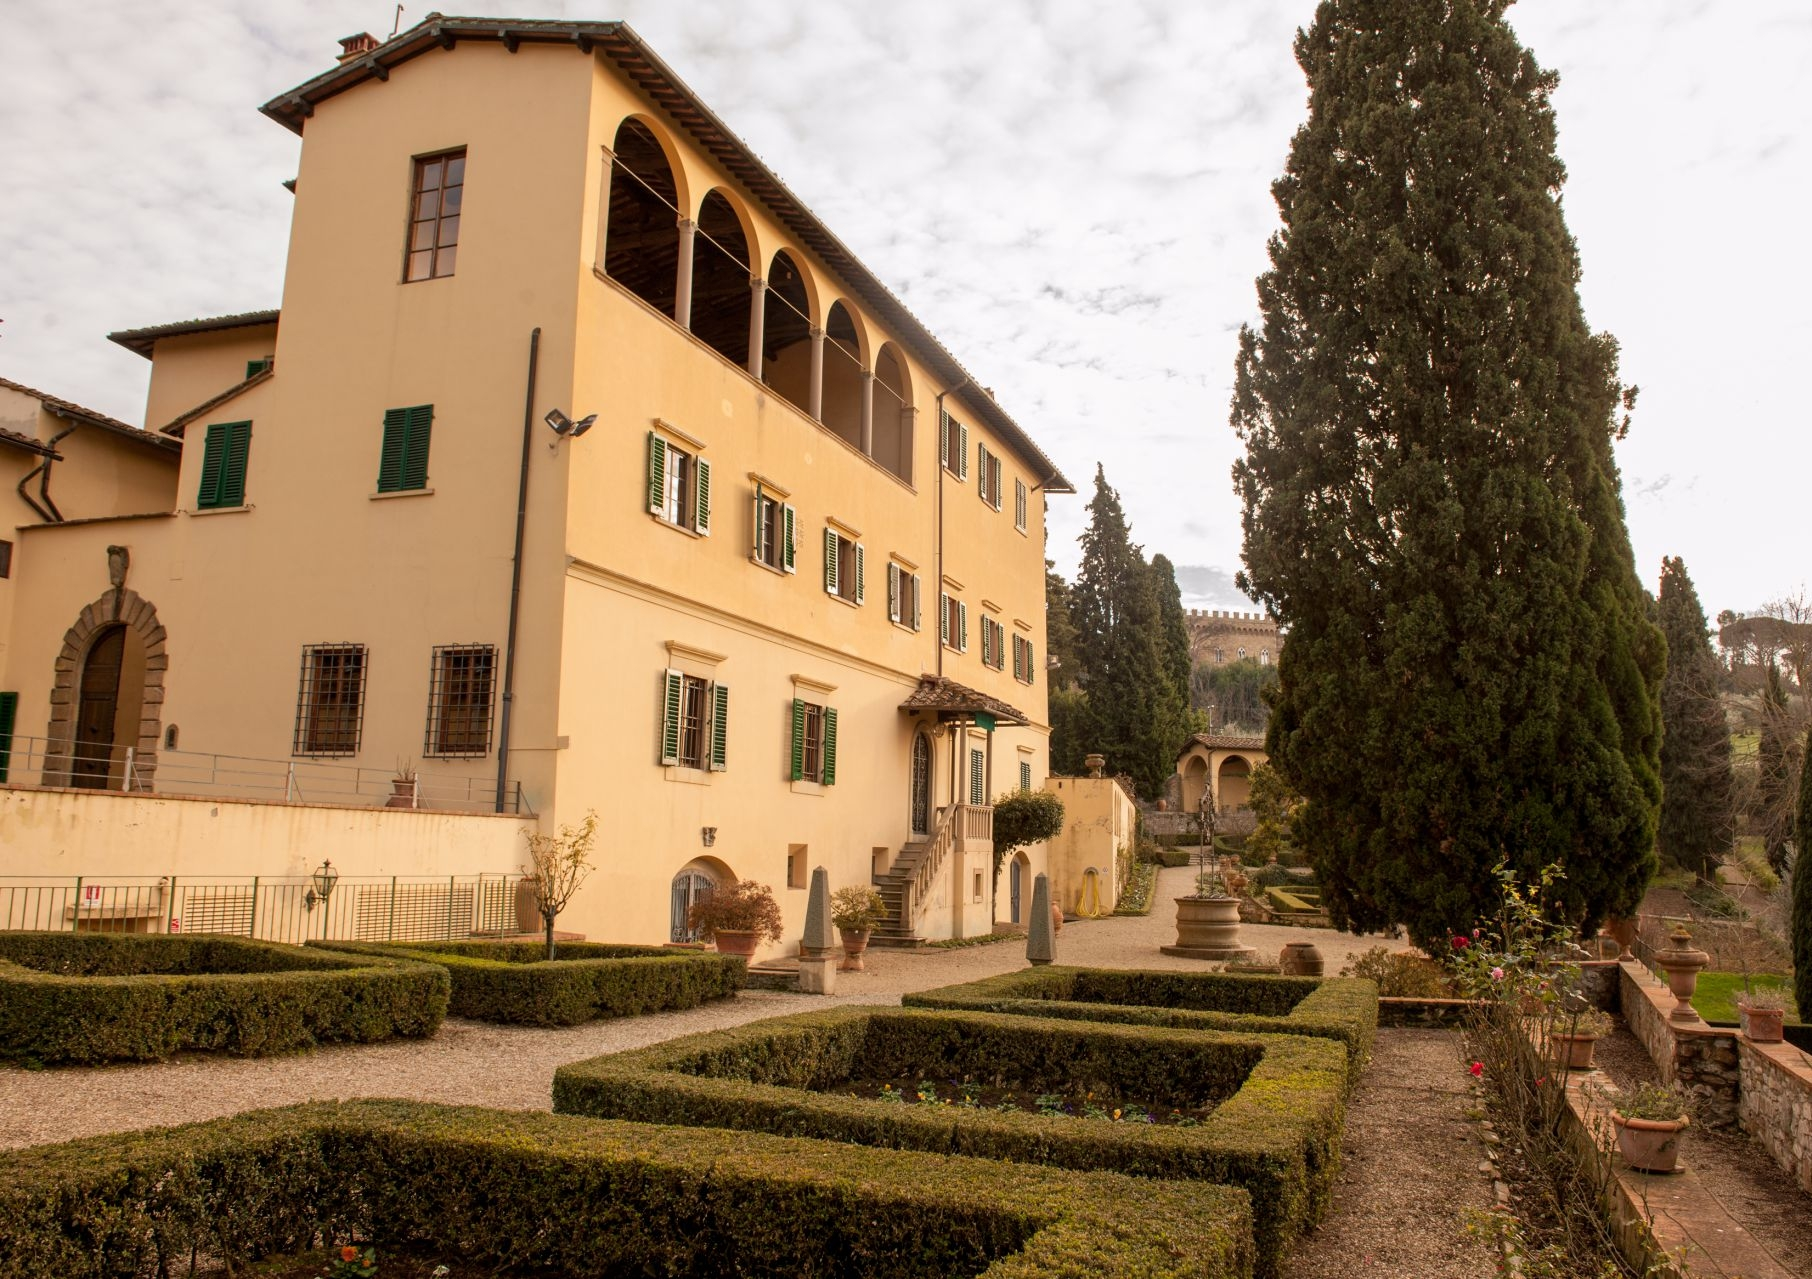 VILLA UMBERTO - This villa hotel was once a historic convent. It has onsite accommodation for 56 and is just 10 minutes from the centre of Florence.Read More...